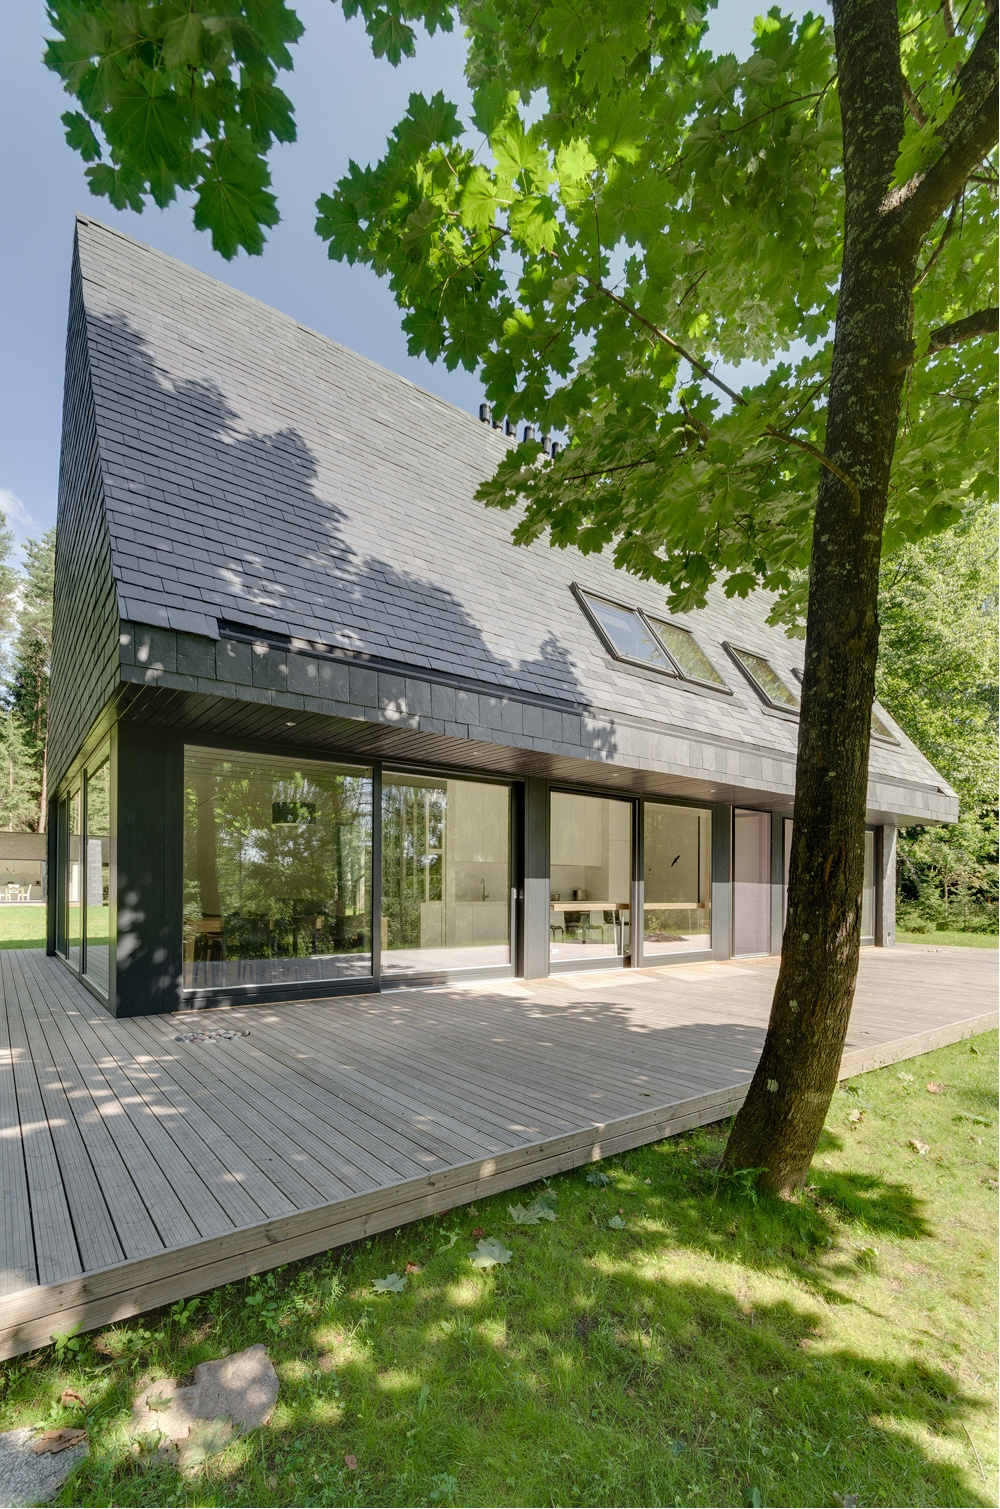 This House in Trakai, Lithuania, was designed by Aketuri Architektai.